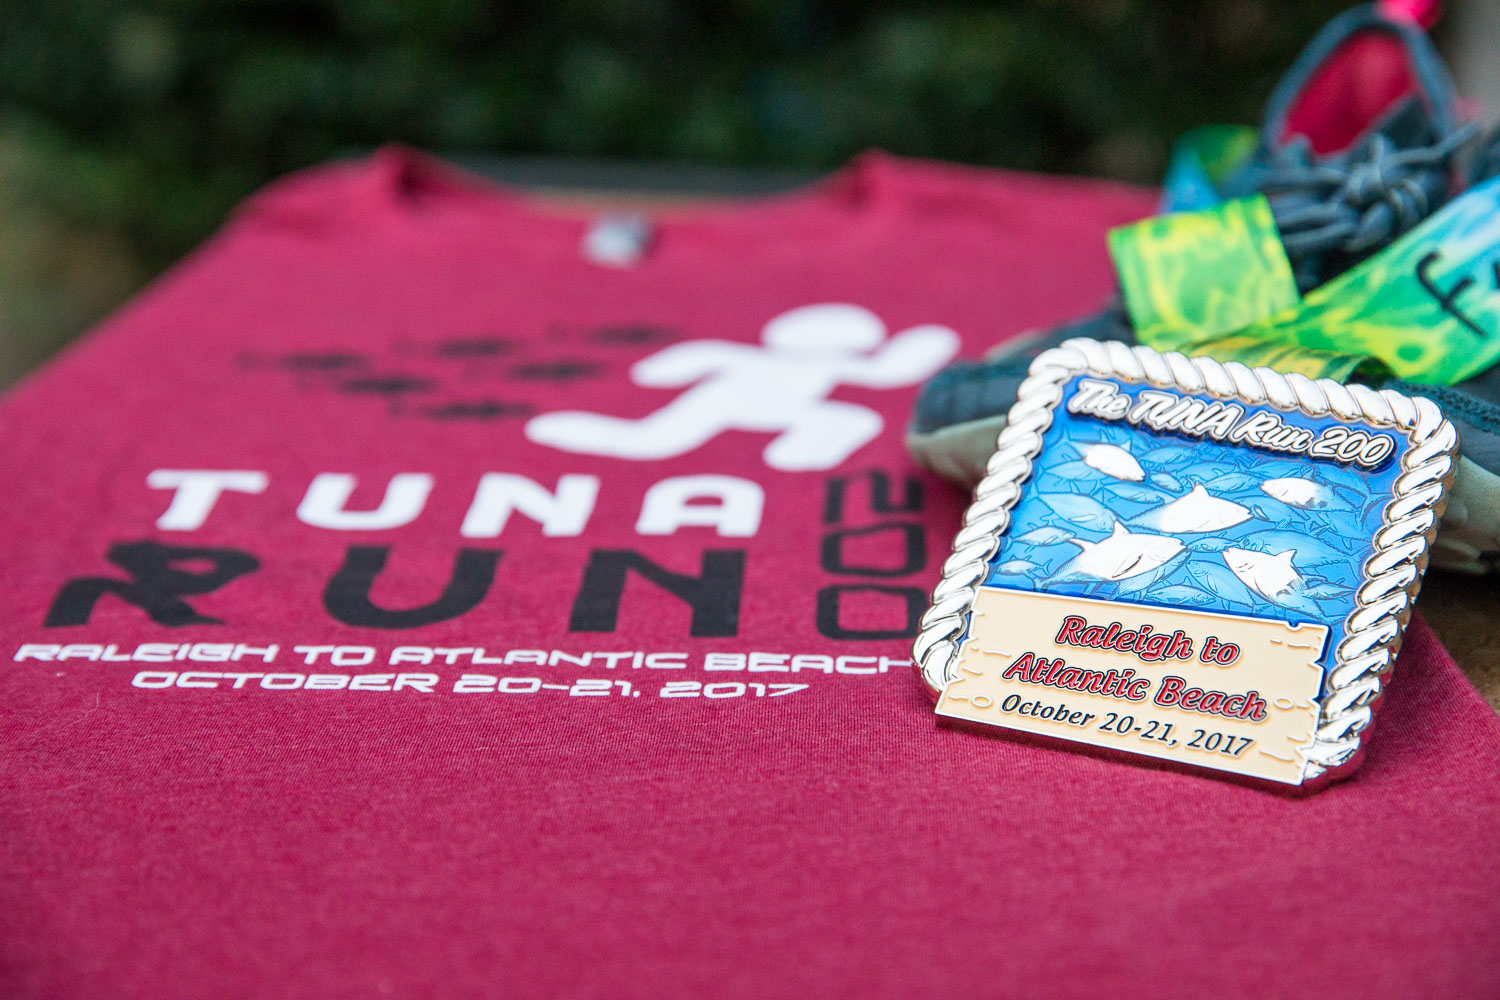 Tuna Run 200 race medal and tshirt